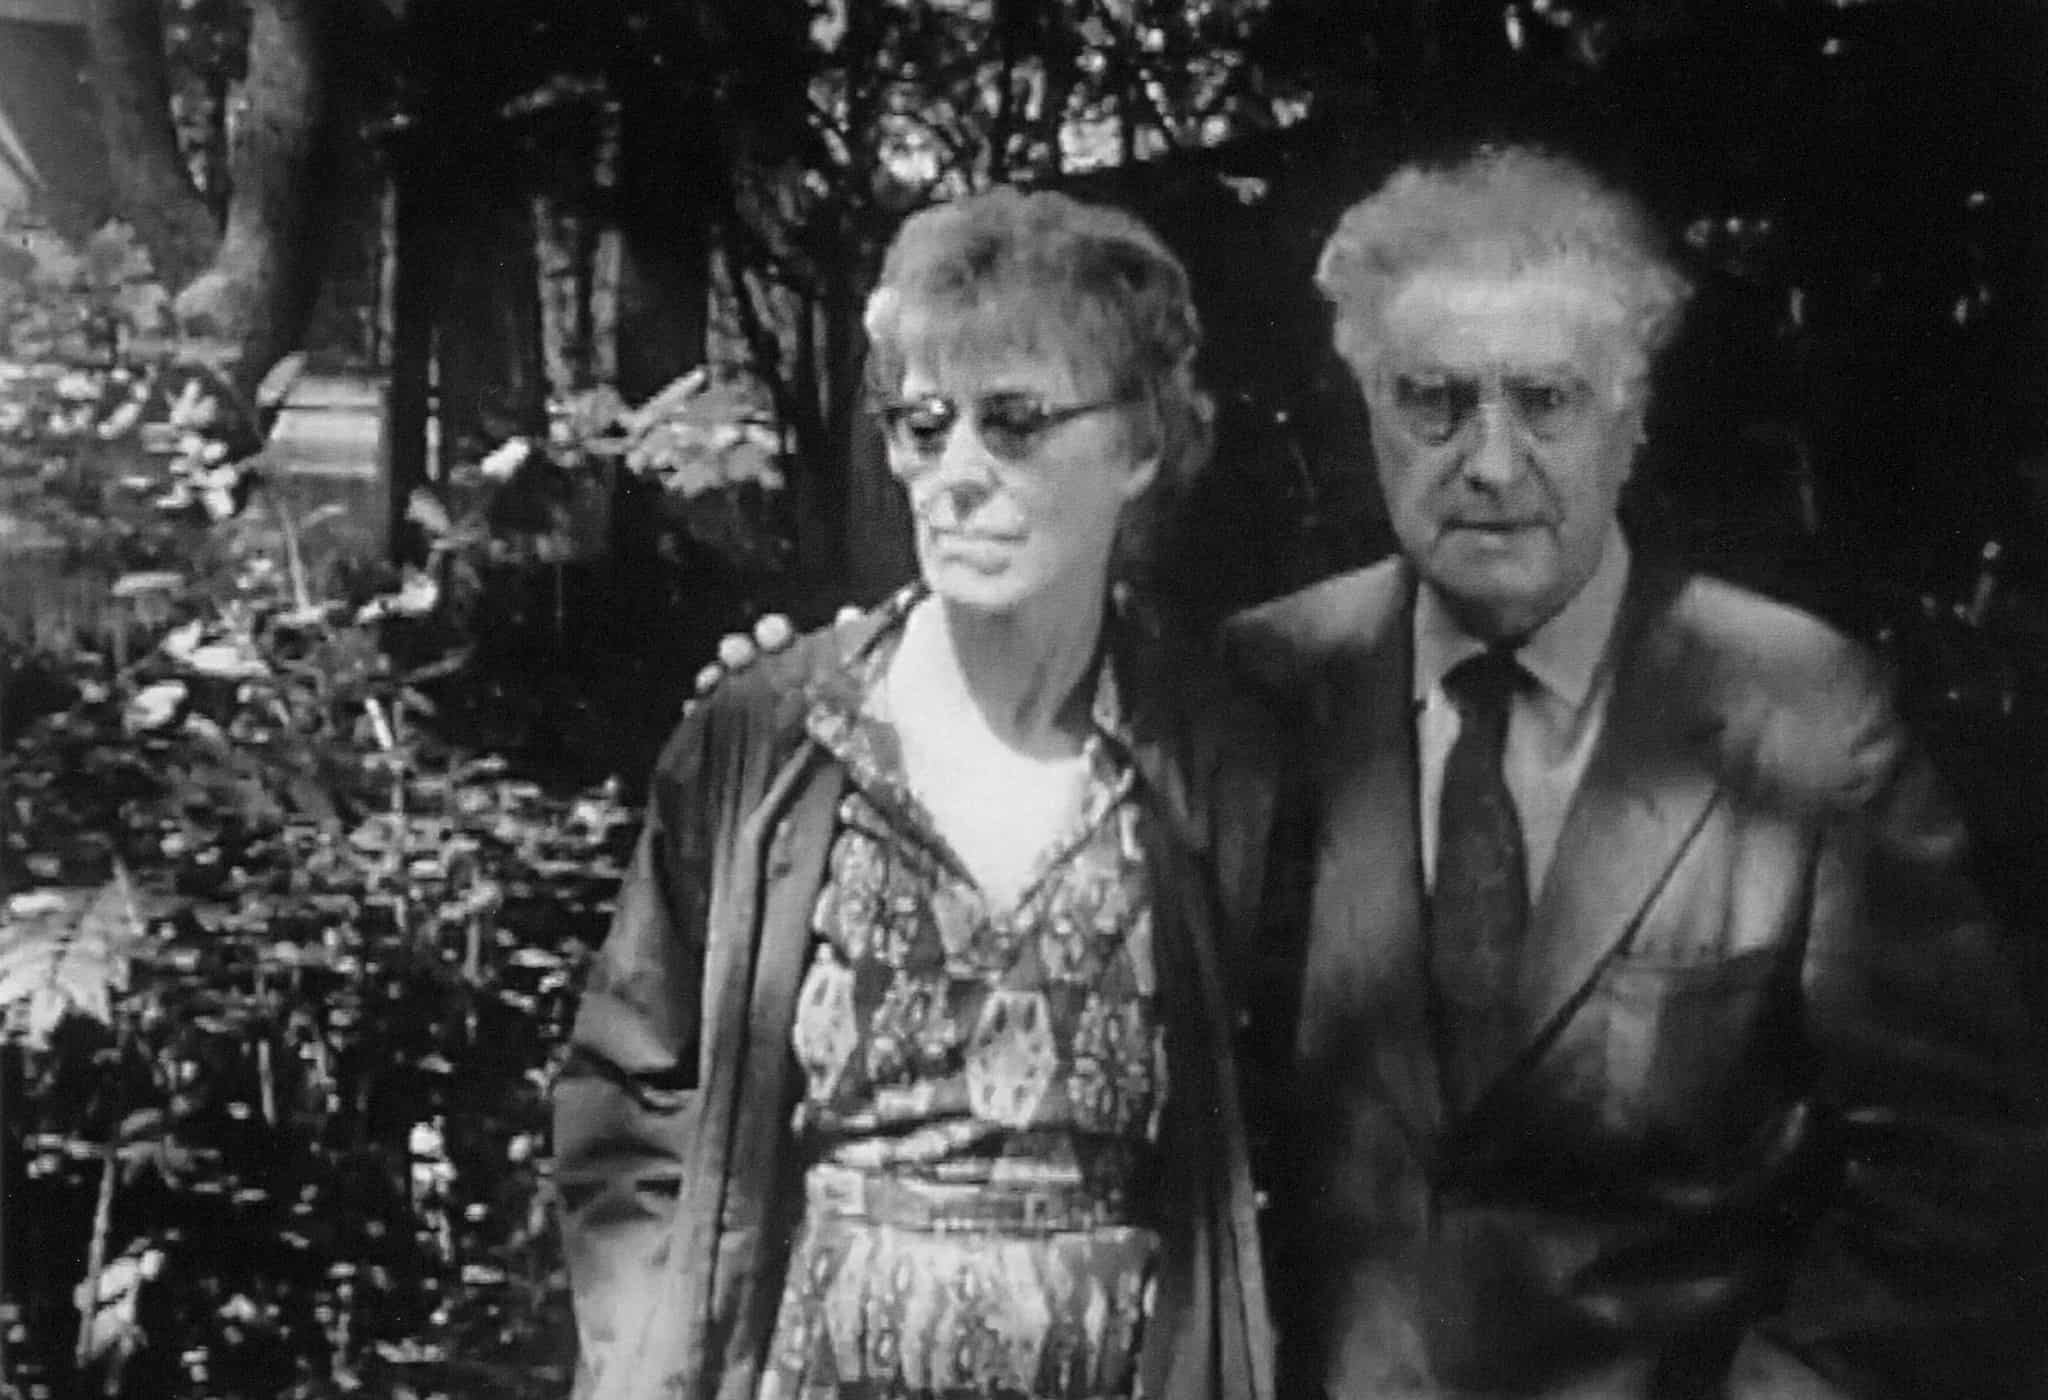 Louise and Edgard Varèse at home in the MacDougal–Sullivan Gardens, New York City.